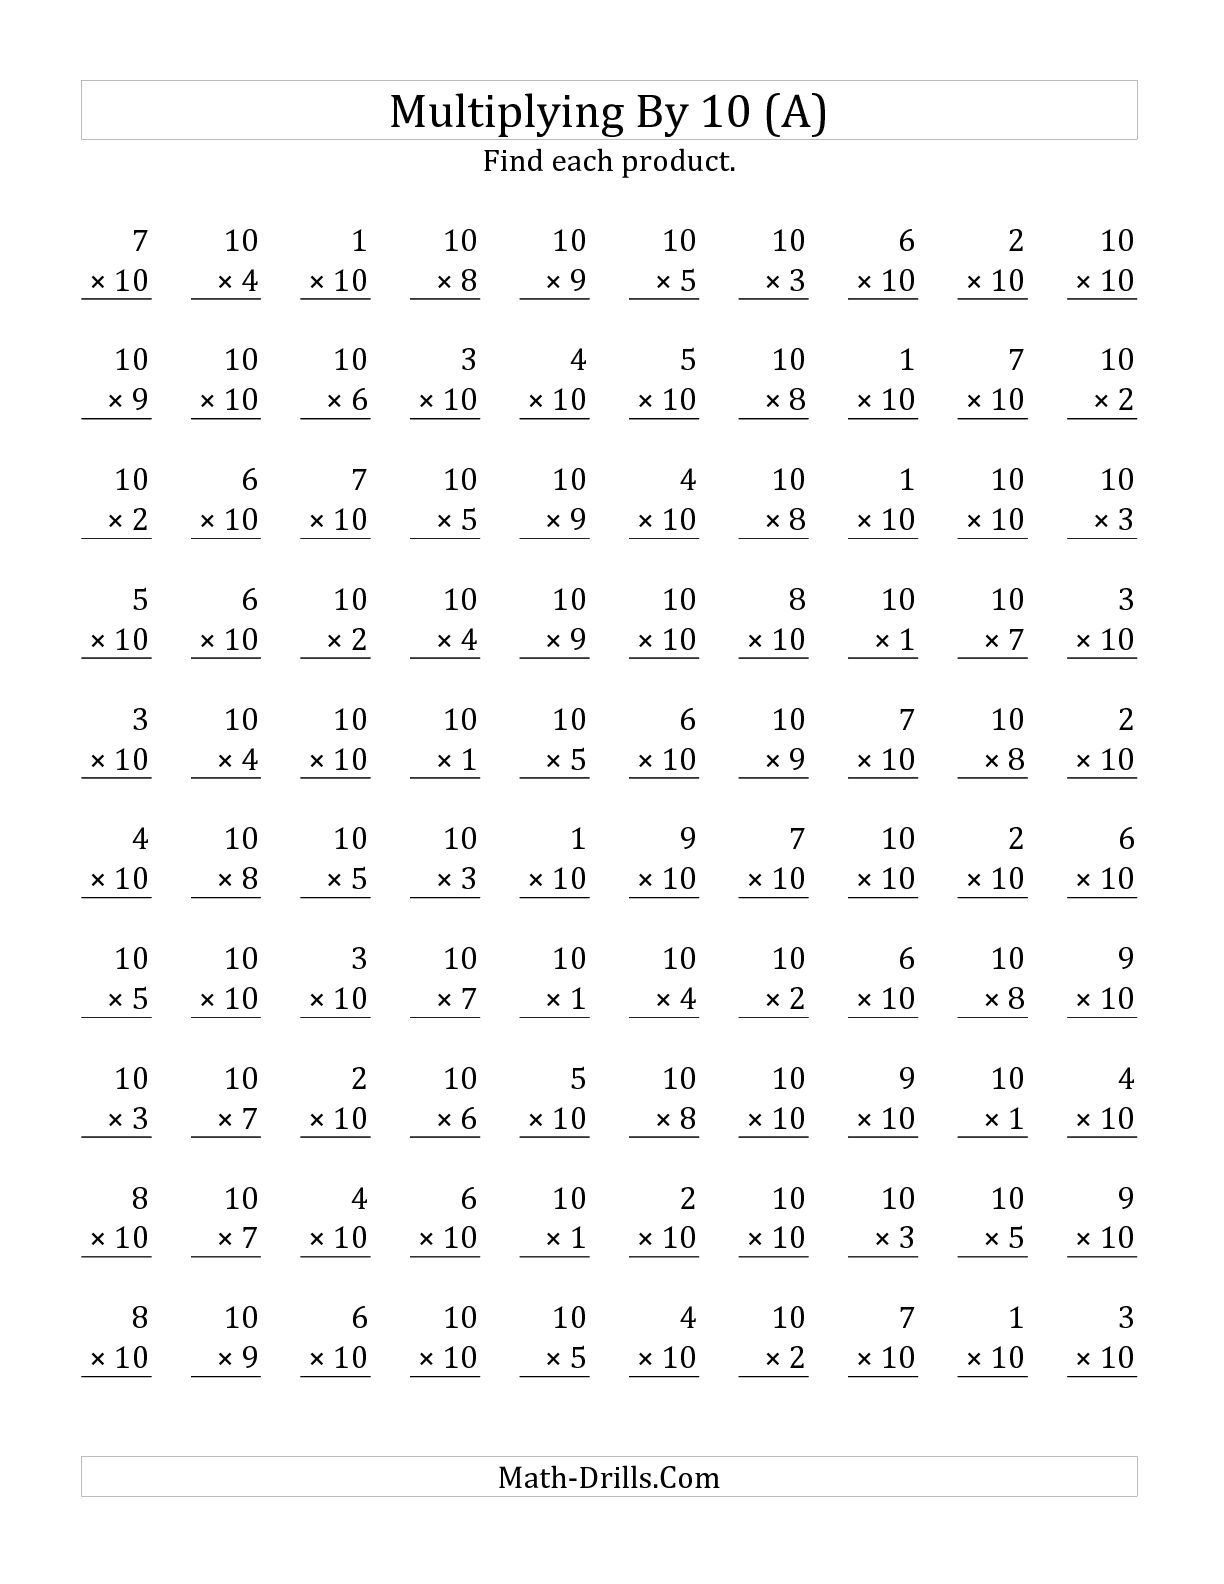 The Multiplying (1 to 10) by 10 (A) math worksheet from the ...